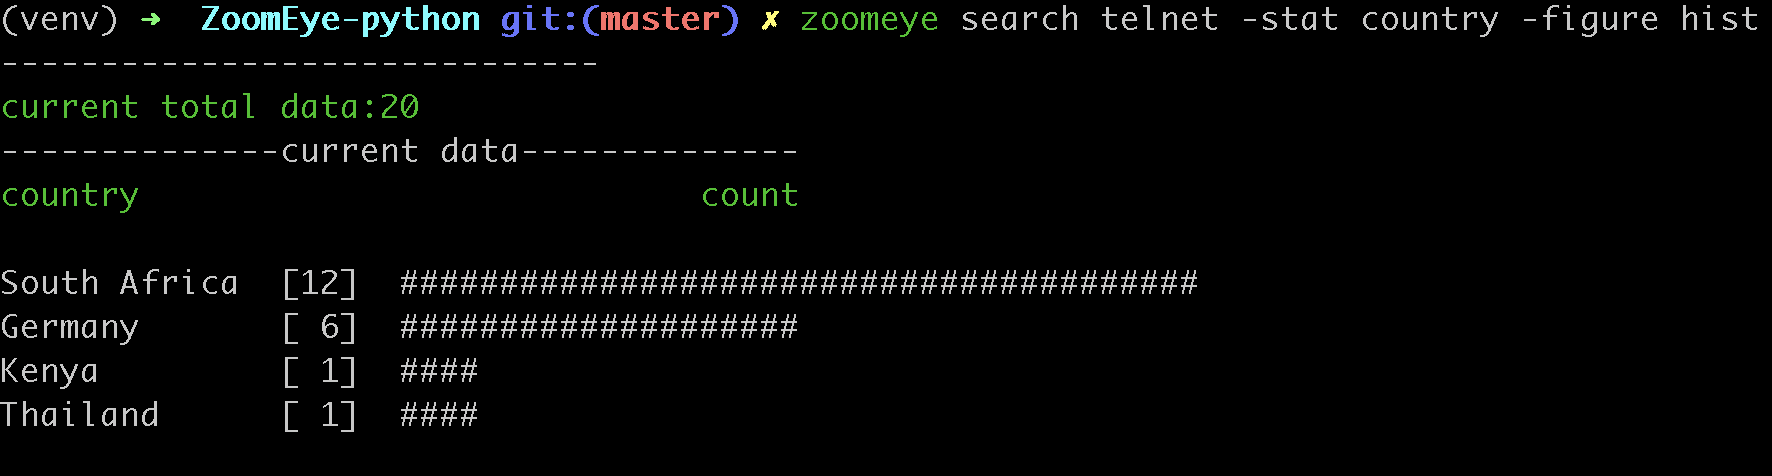 https://raw.githubusercontent.com/knownsec/ZoomEye-python/master/images/image-20210205005117712.png